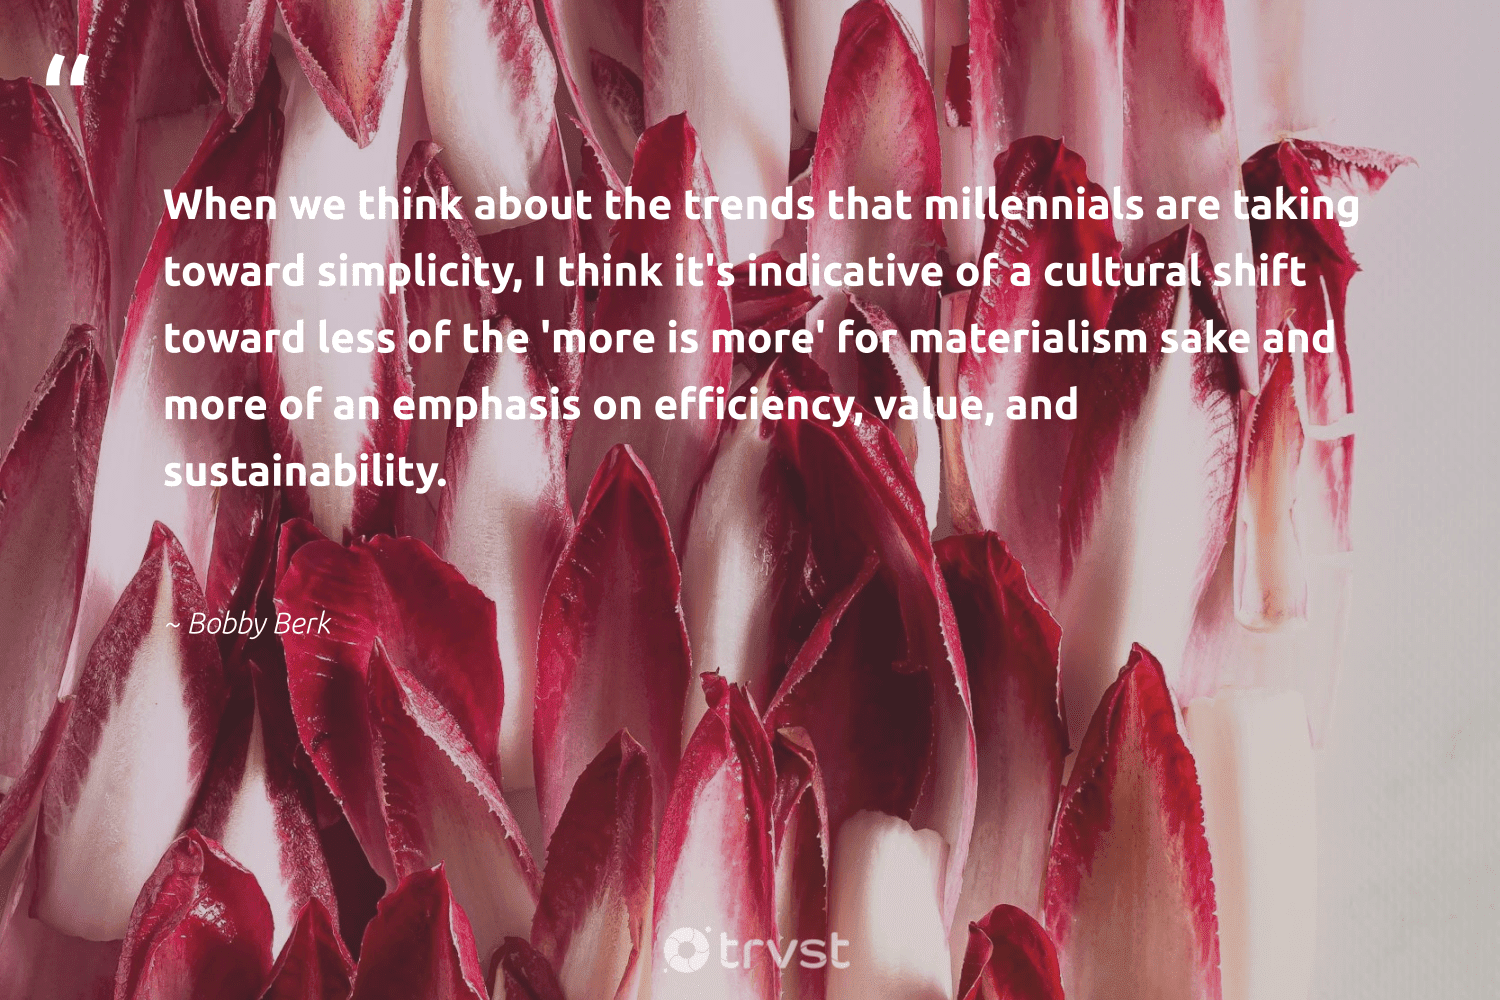 """""""When we think about the trends that millennials are taking toward simplicity, I think it's indicative of a cultural shift toward less of the 'more is more' for materialism sake and more of an emphasis on efficiency, value, and sustainability.""""  - Bobby Berk #trvst #quotes #sustainability #sustainable #fashion #greenliving #bethechange #ecofriendly #green #gogreen #dosomething #sustainableliving"""